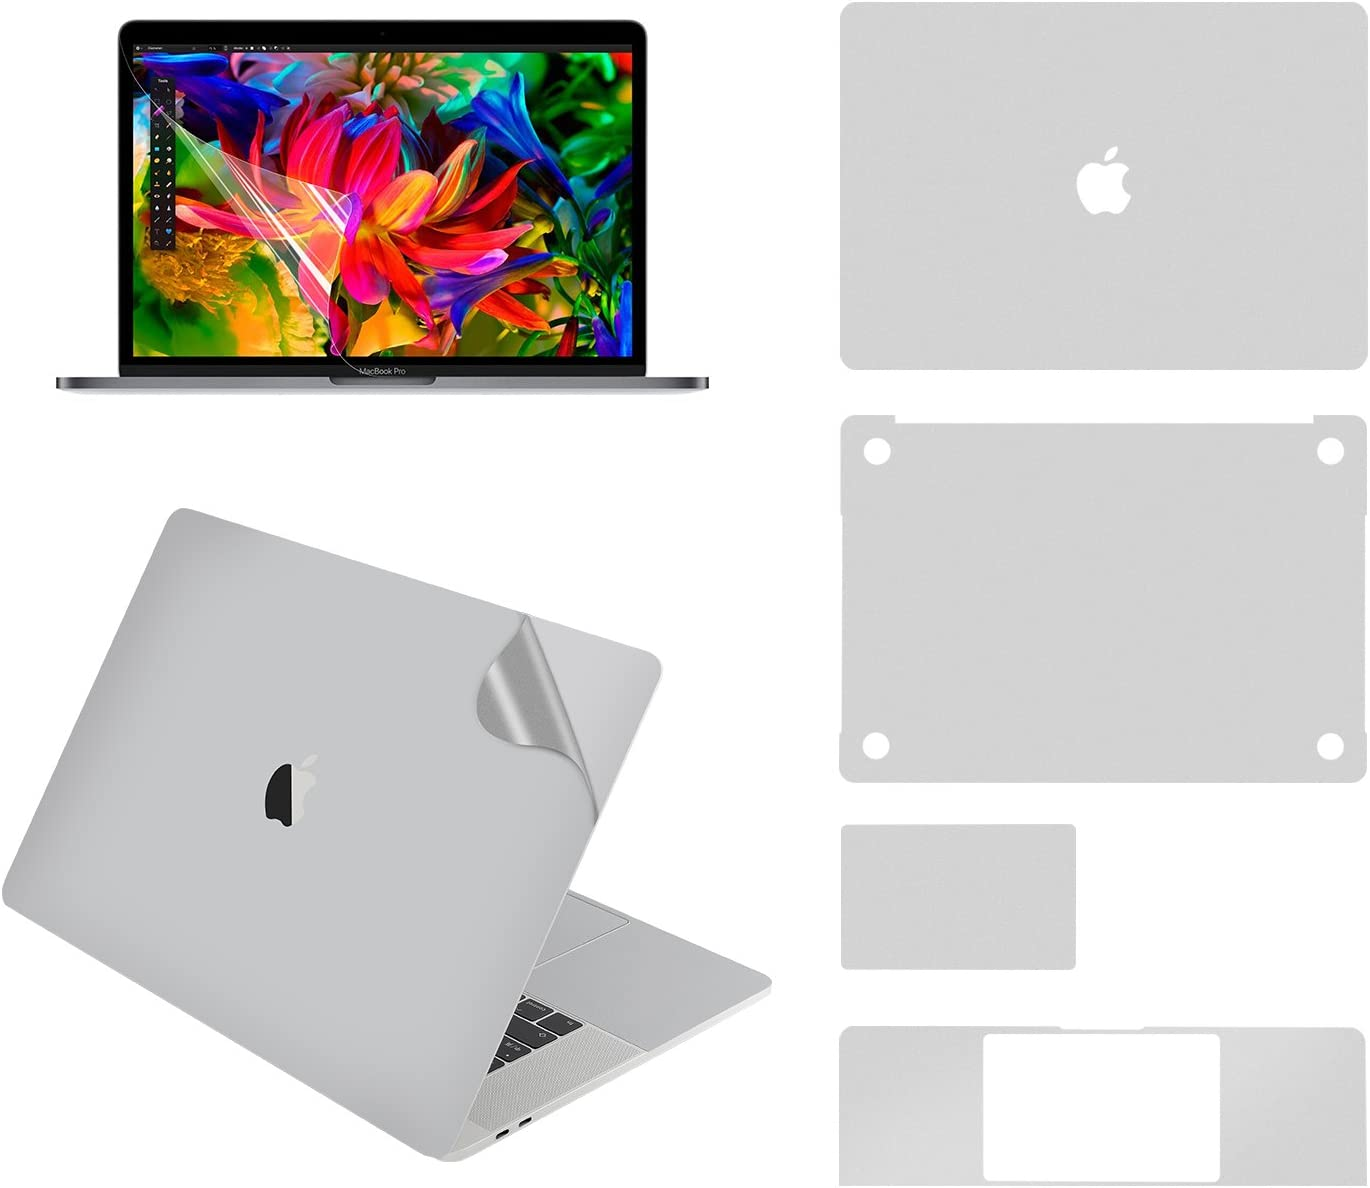 LENTION Full Body Skin for MacBook Pro (15-inch, 2016-2019), Model A1707/A1990, Full-Cover Protective Vinyl Decal Stickers (Top/Bottom/Touchpad/Palm Rest) + Screen Protector (Silver)